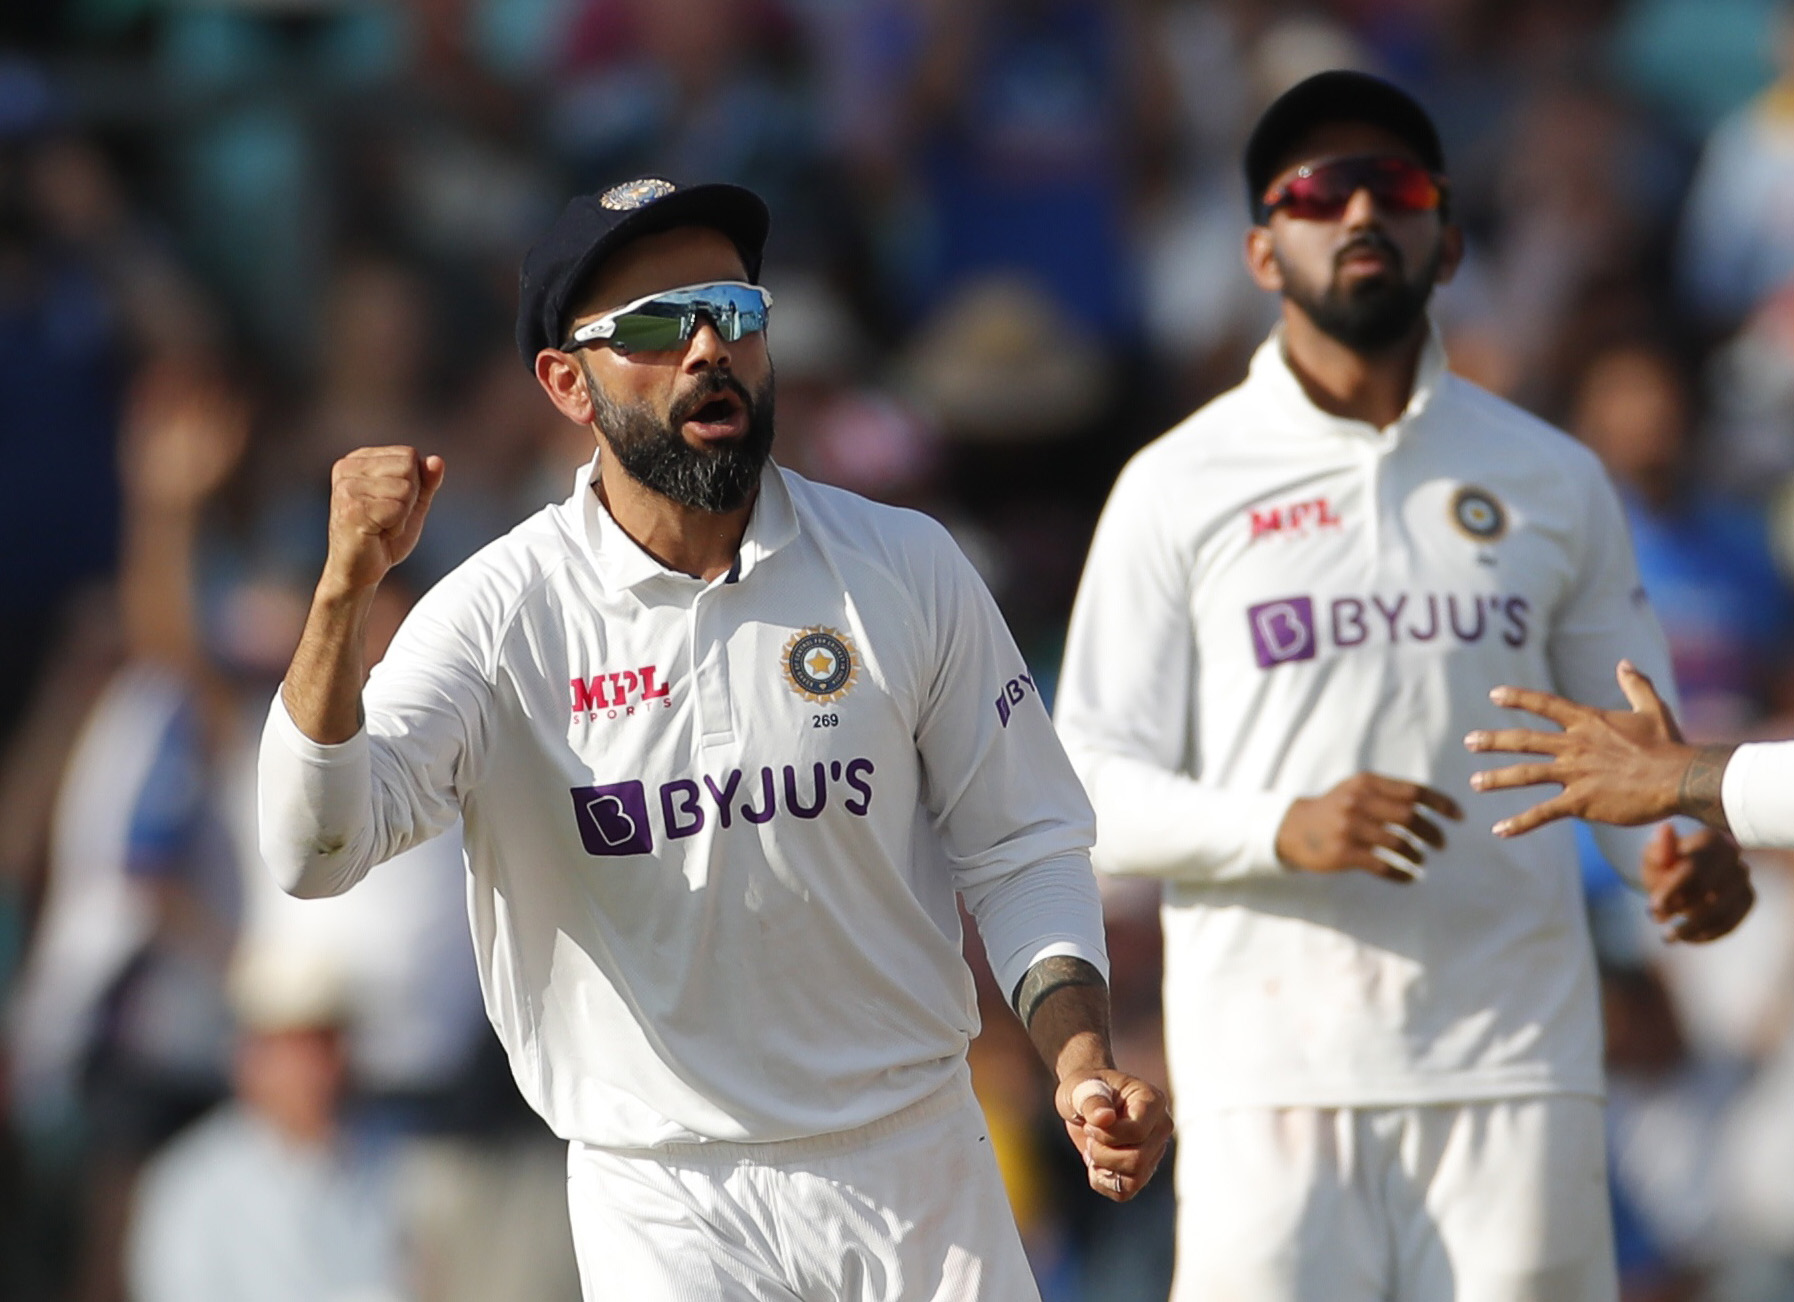 Cricket - Fourth Test - England v India - The Oval, London, Britain - September 6, 2021 India's Virat Kohli celebrates after winning the test match Action Images via Reuters/Andrew Couldridge